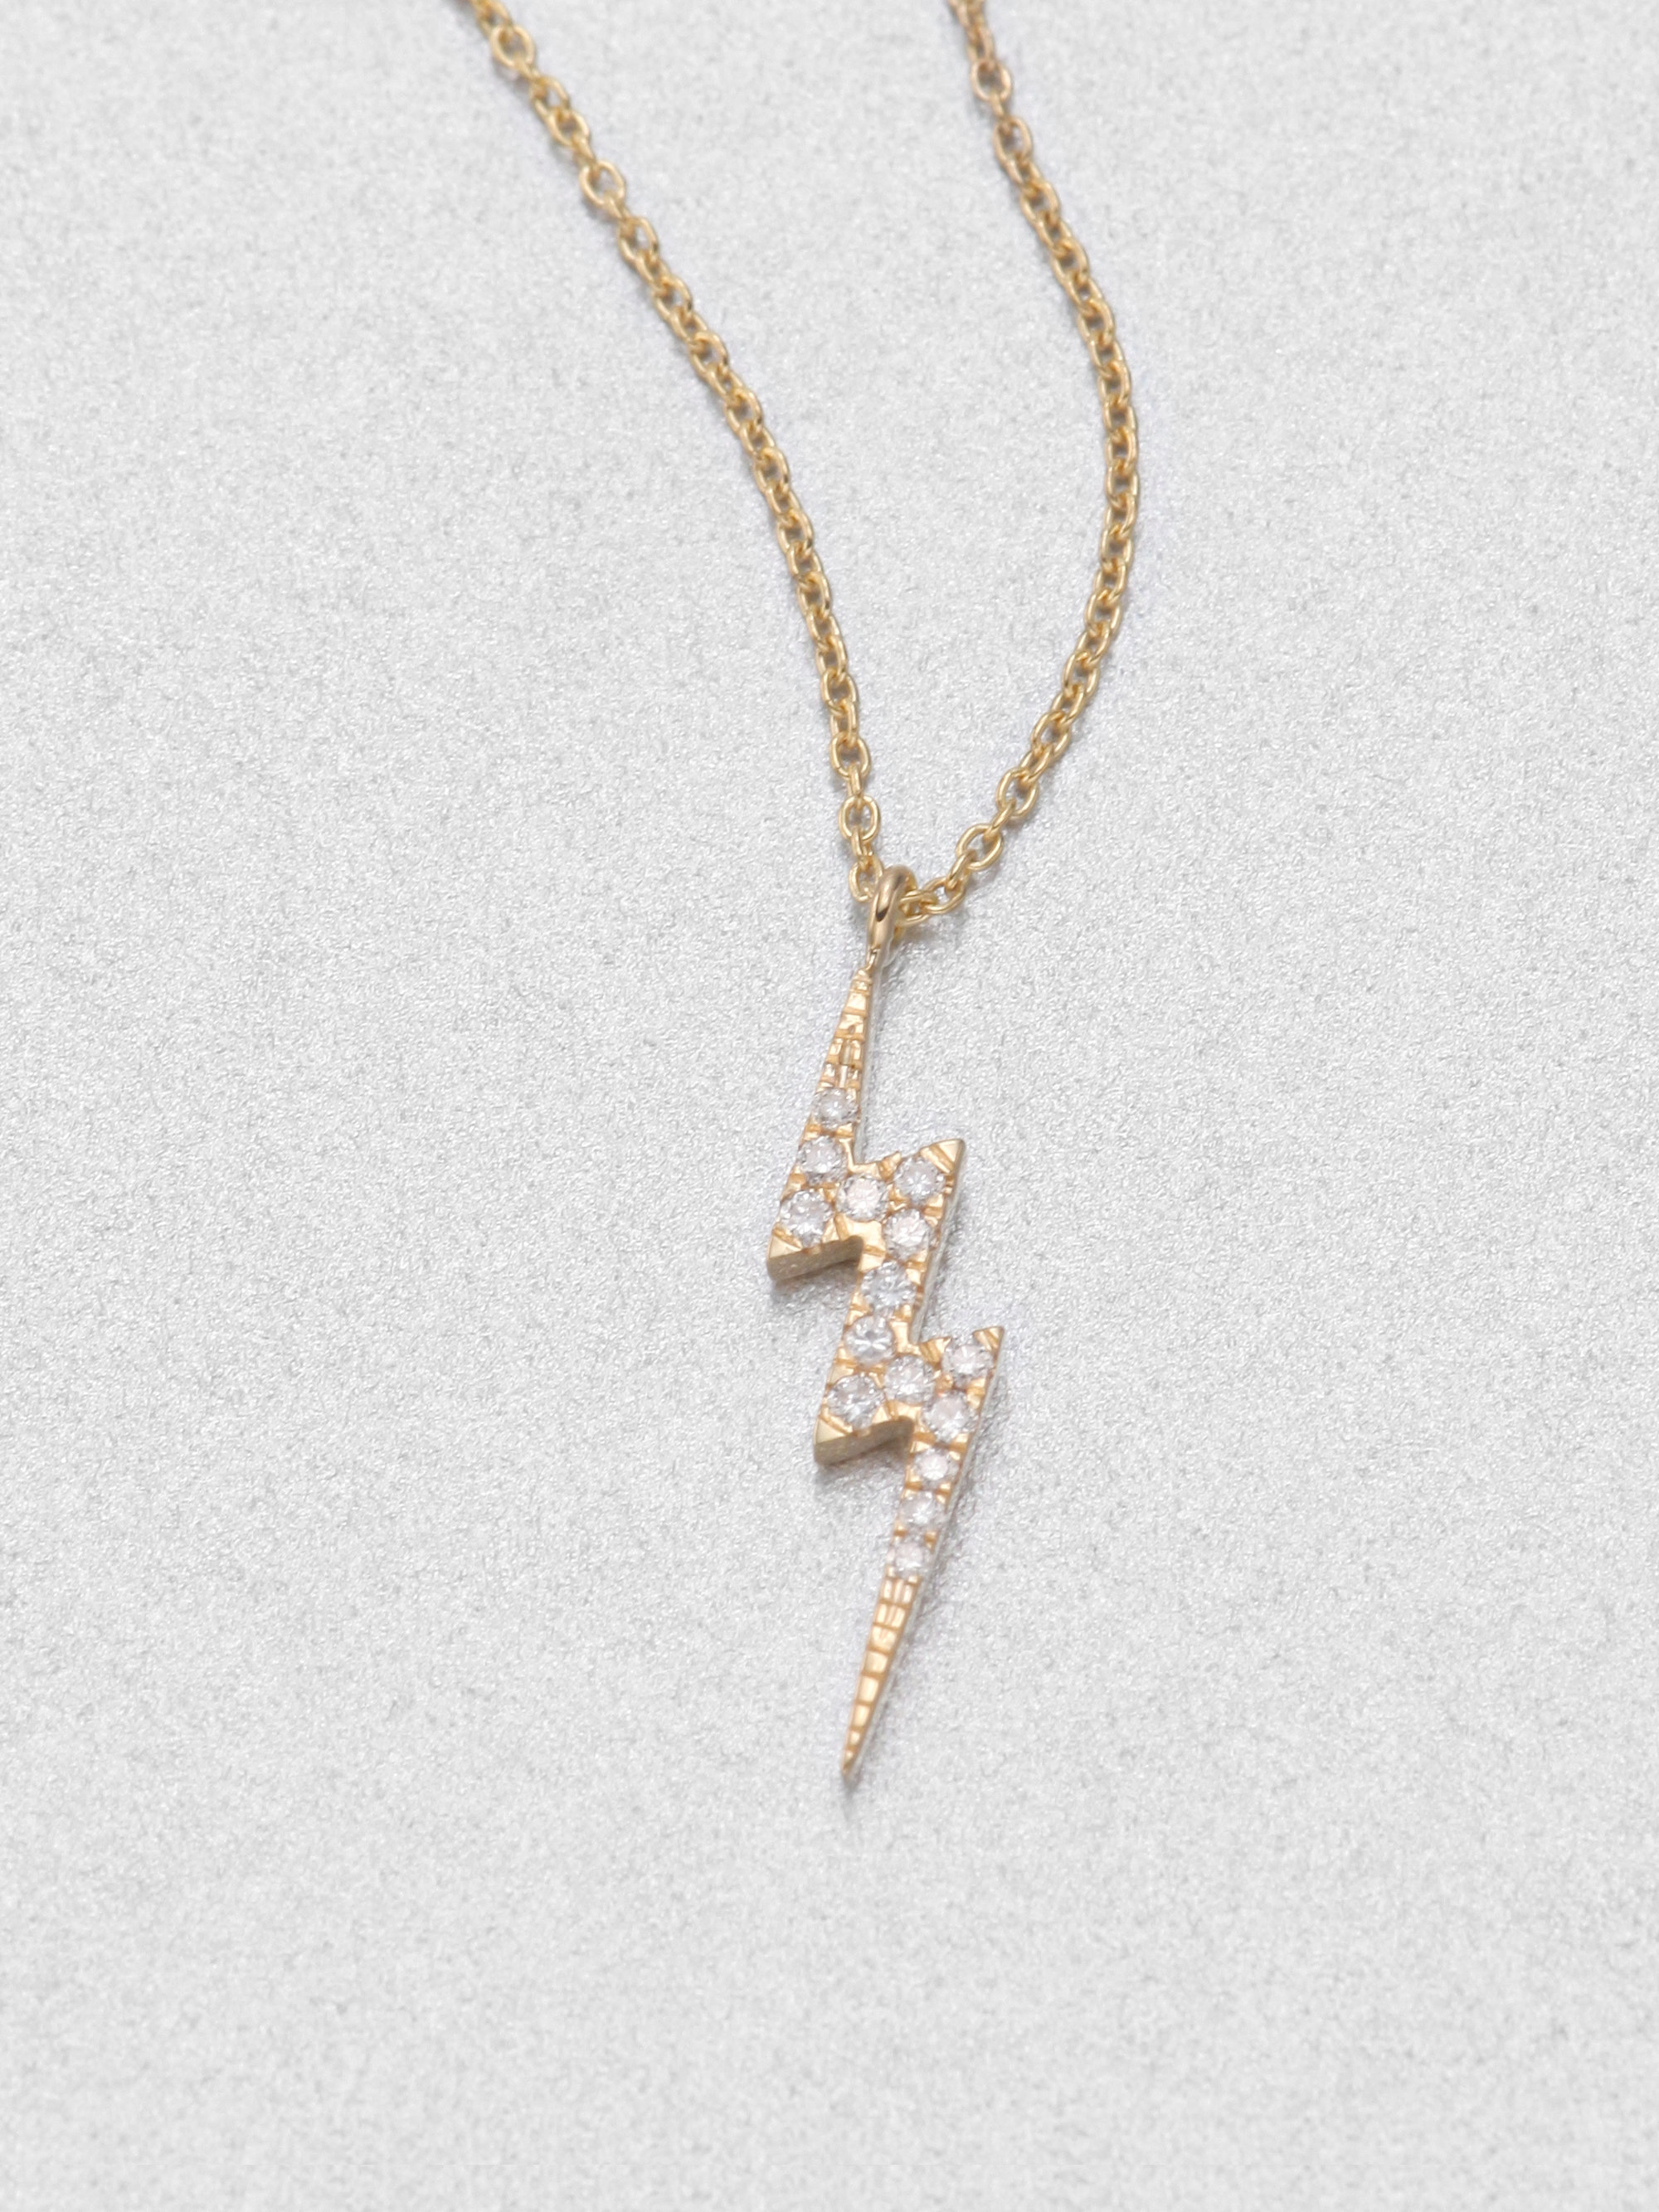 This is a genuineTiffany amp Co ELSA PERETTI 925 Silver Starfish pendant necklace The fluffy bag and the box do not in any way deflect from the beautiful pendant nor indeed the fact that it is a genui